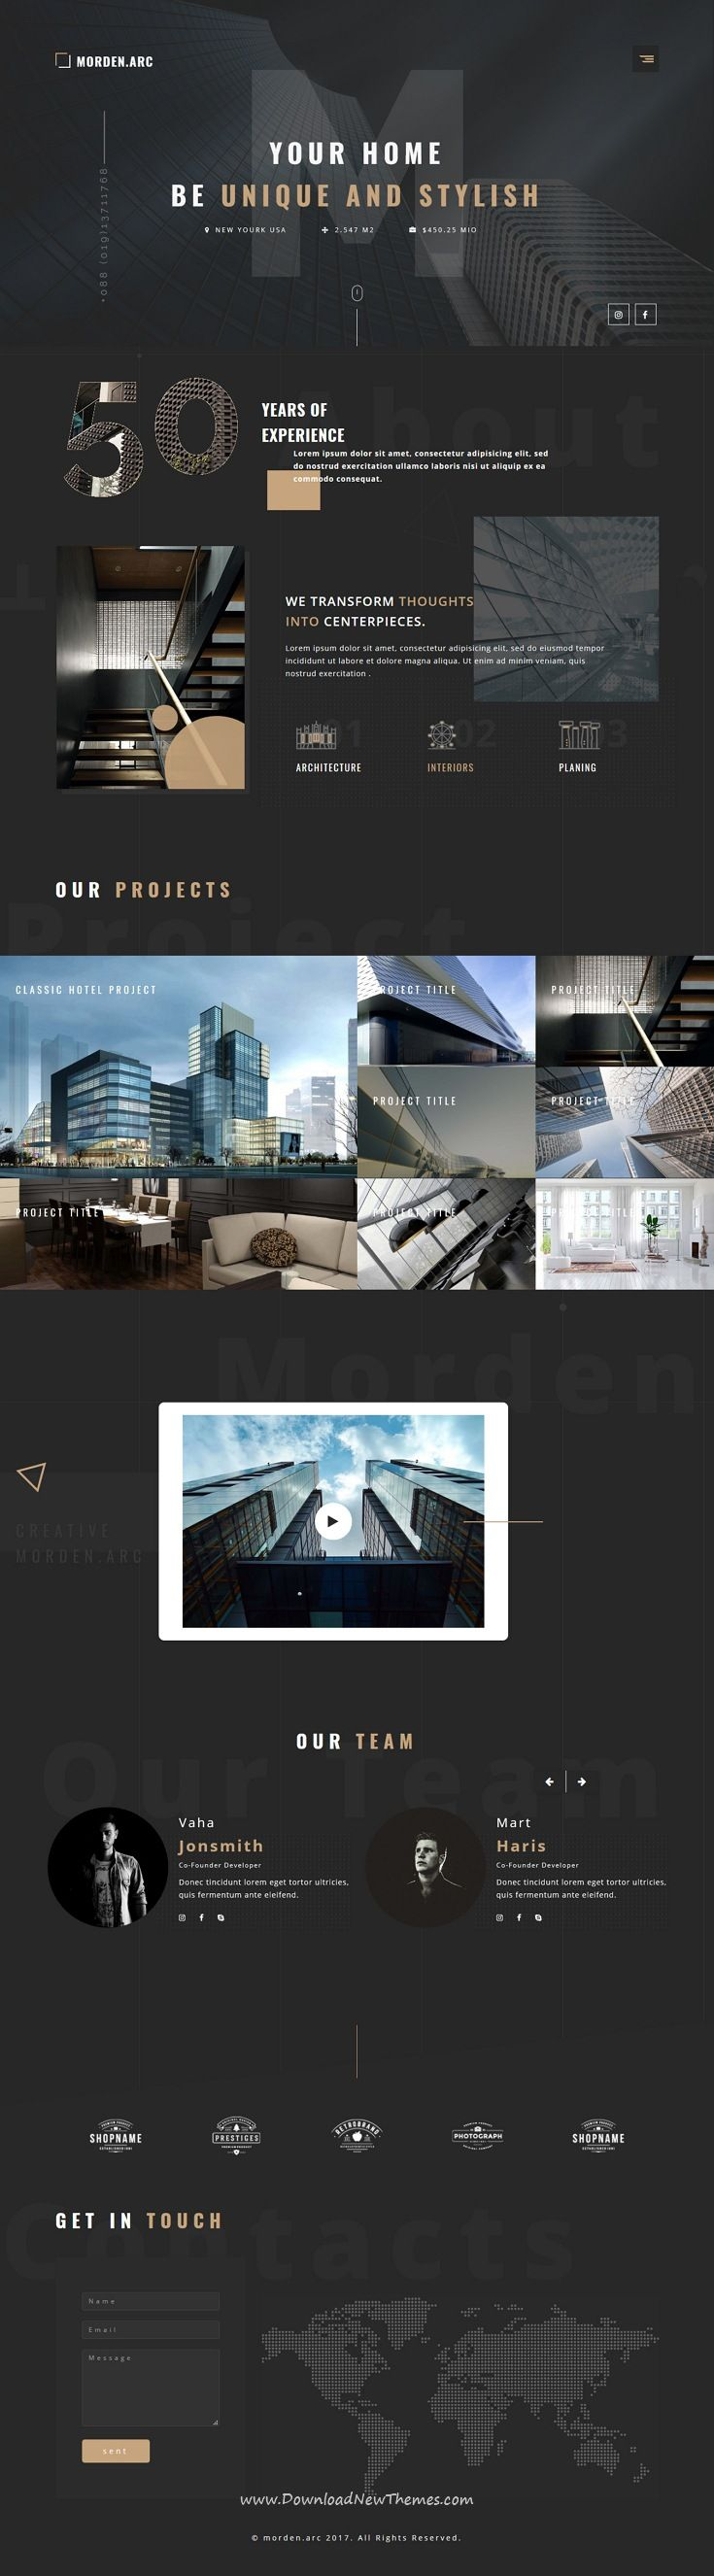 Comfortable Hotel Website Templates Ideas - Examples Professional ...